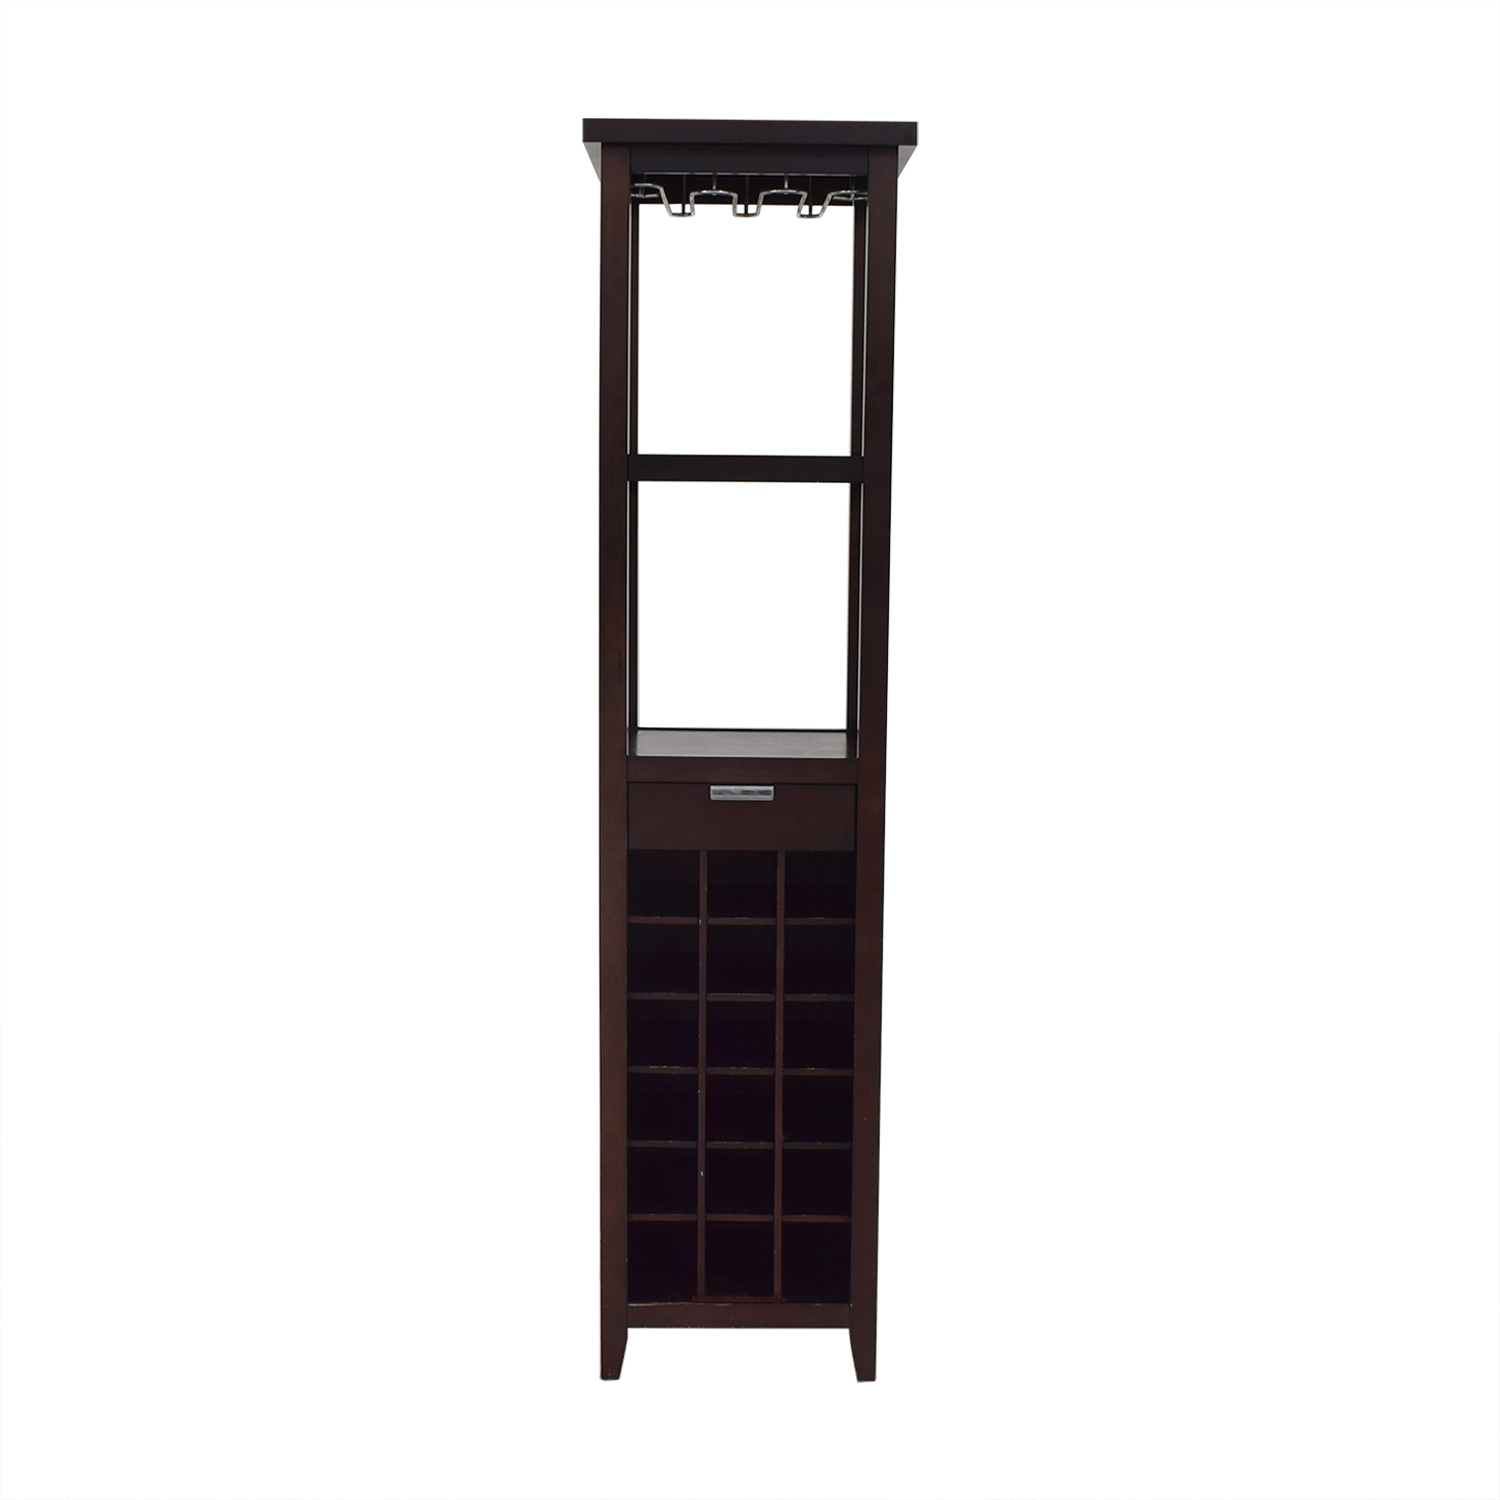 Crate & Barrel Crate & Barrel Wine Stand with Storage dark brown